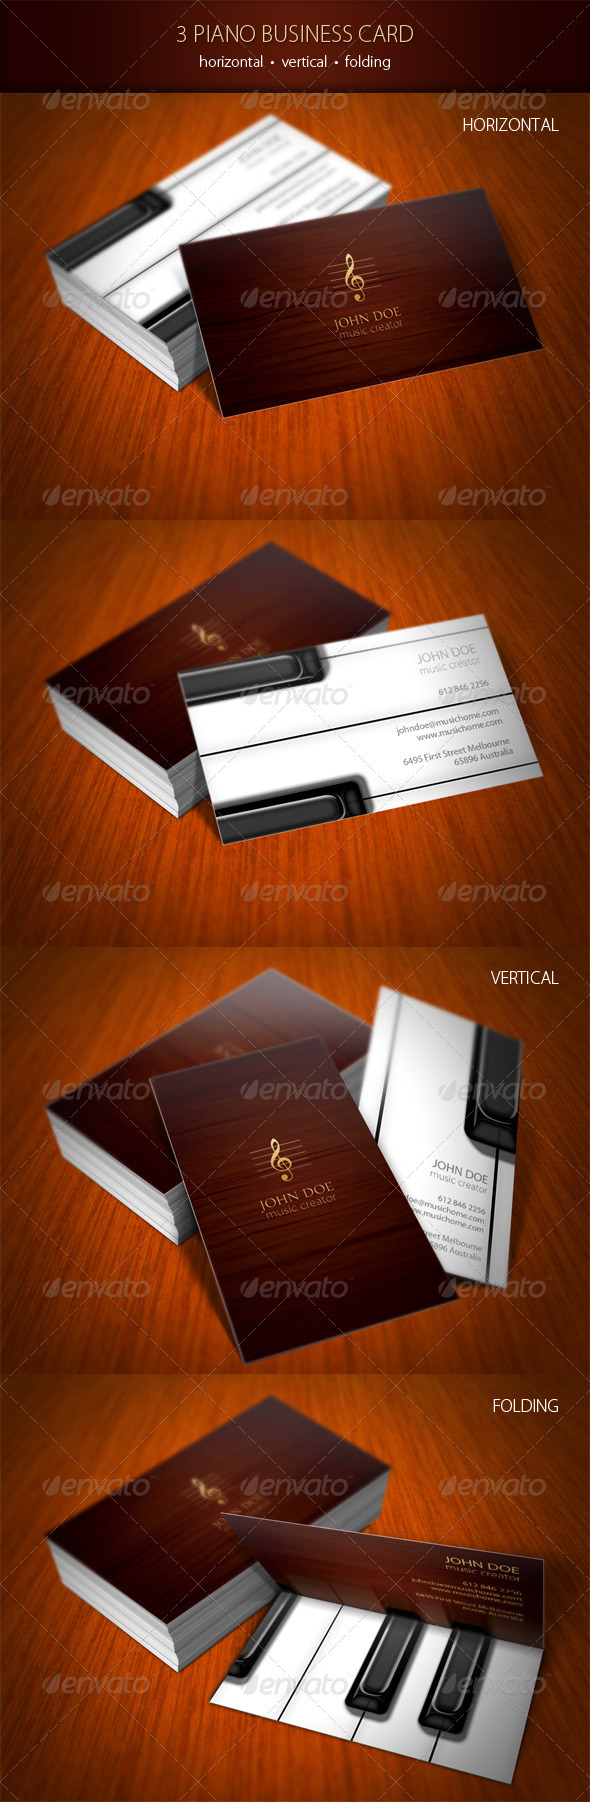 GraphicRiver 3 Piano Business Card 841643